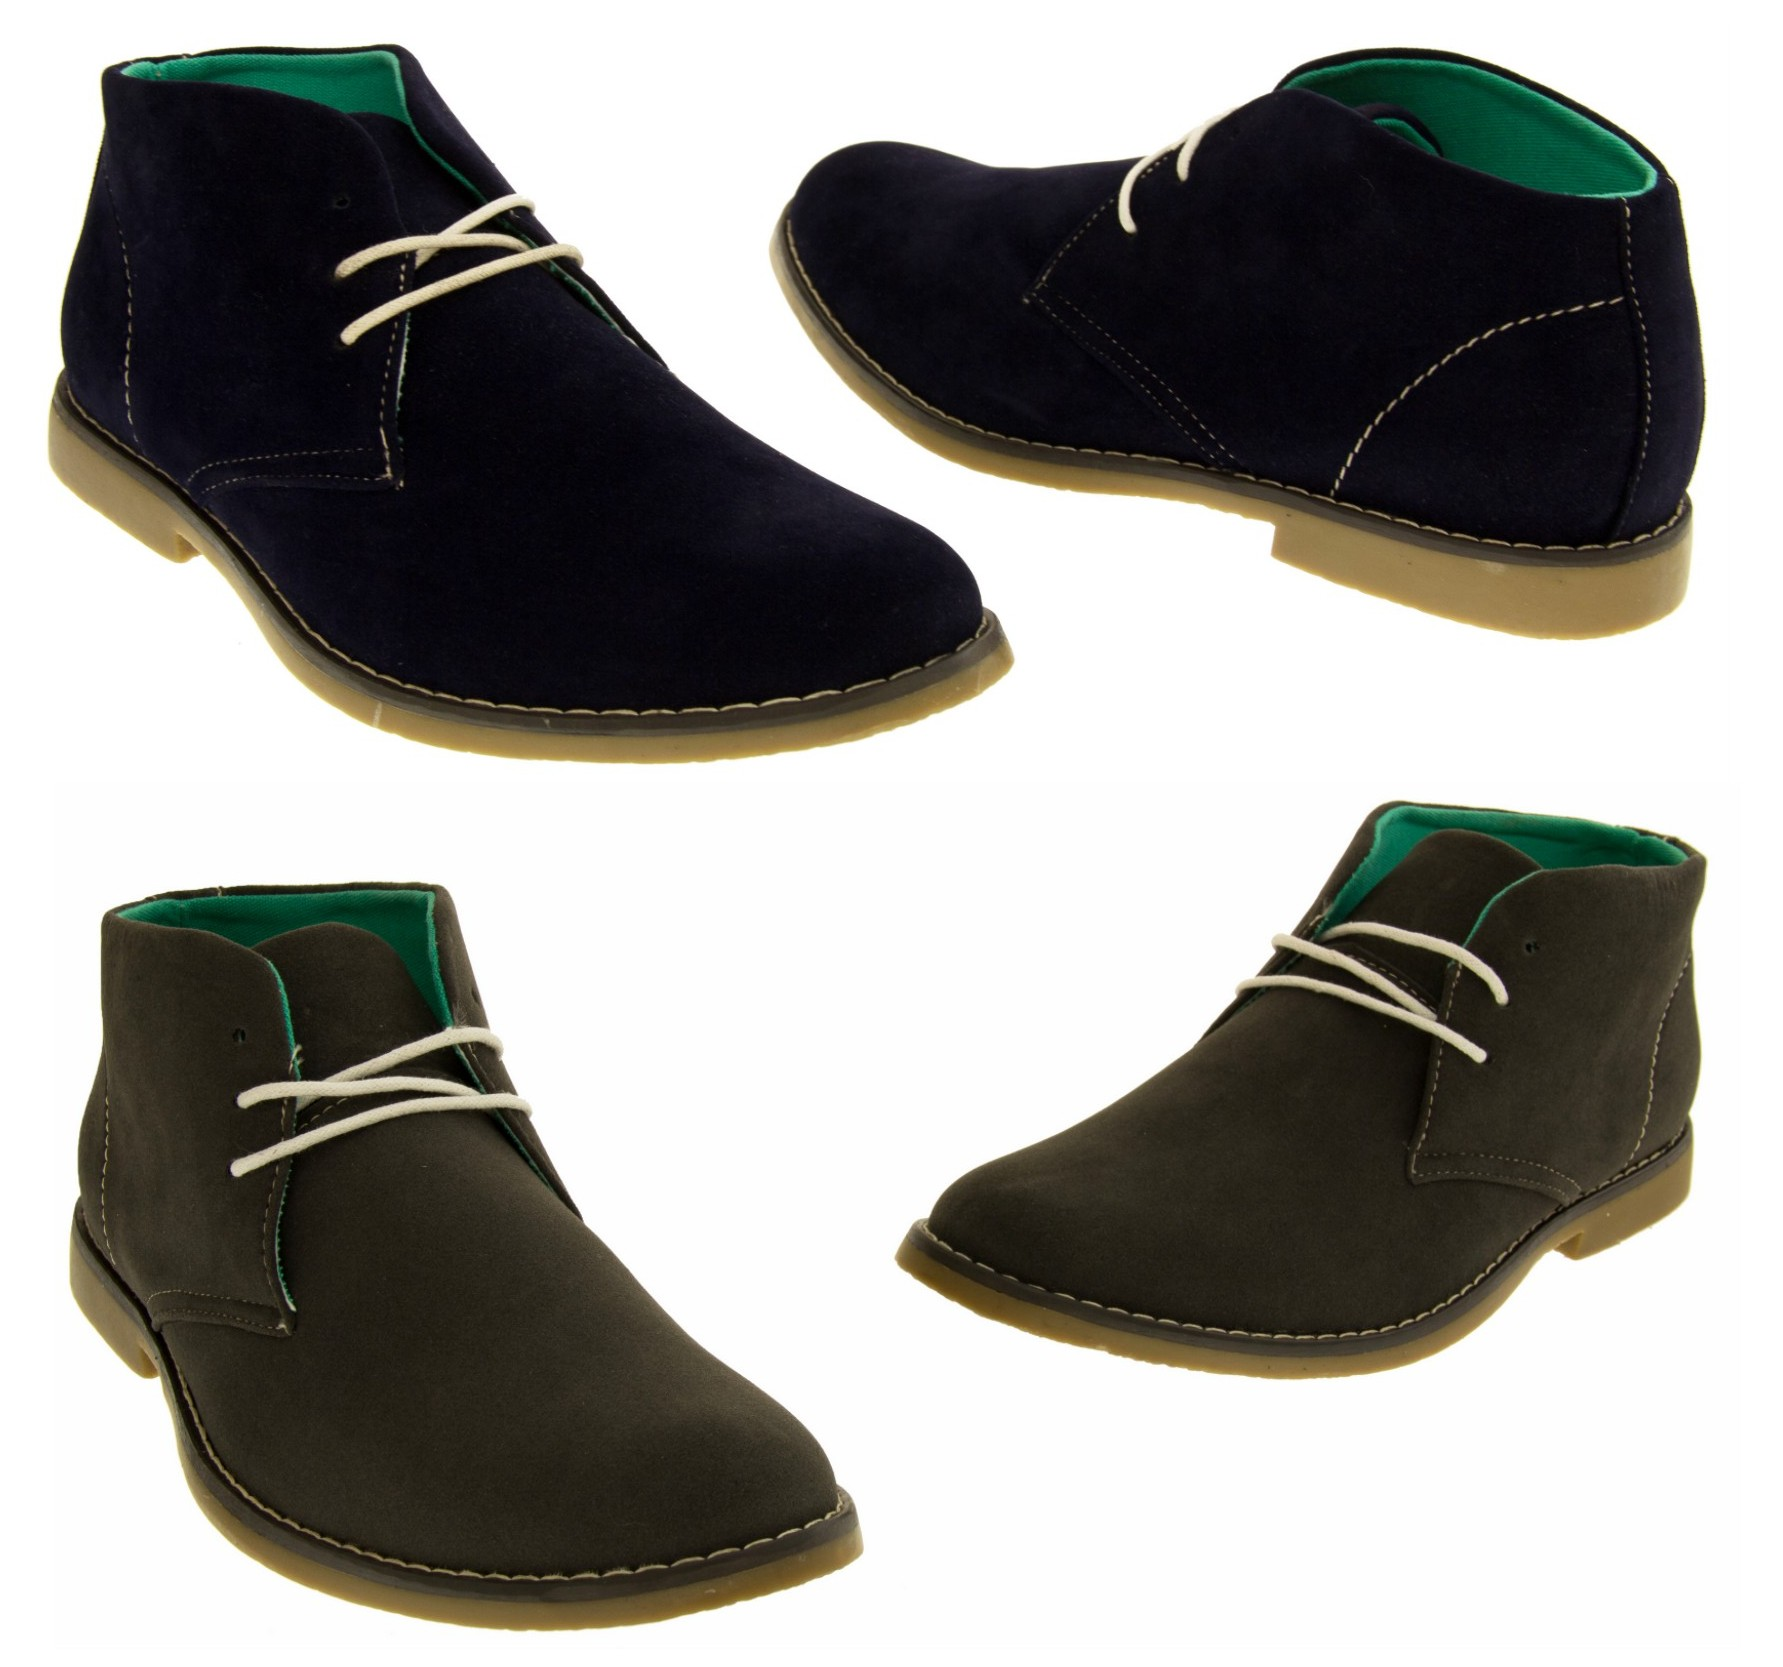 mens classics faux suede desert boots lace up casual boot size 6 7 8 9 10 11 12 ebay. Black Bedroom Furniture Sets. Home Design Ideas